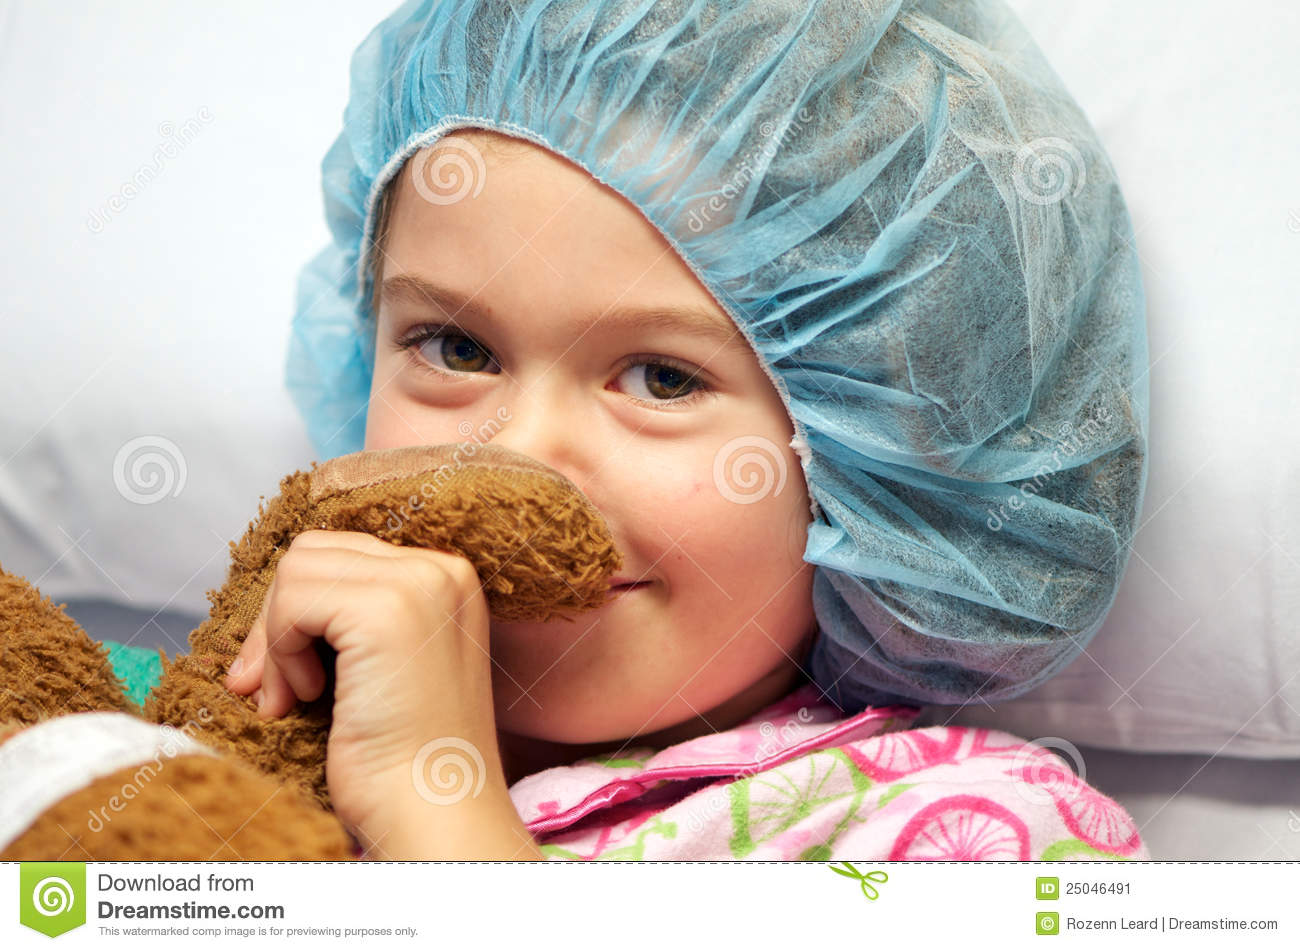 Sick child wearing surgical cap